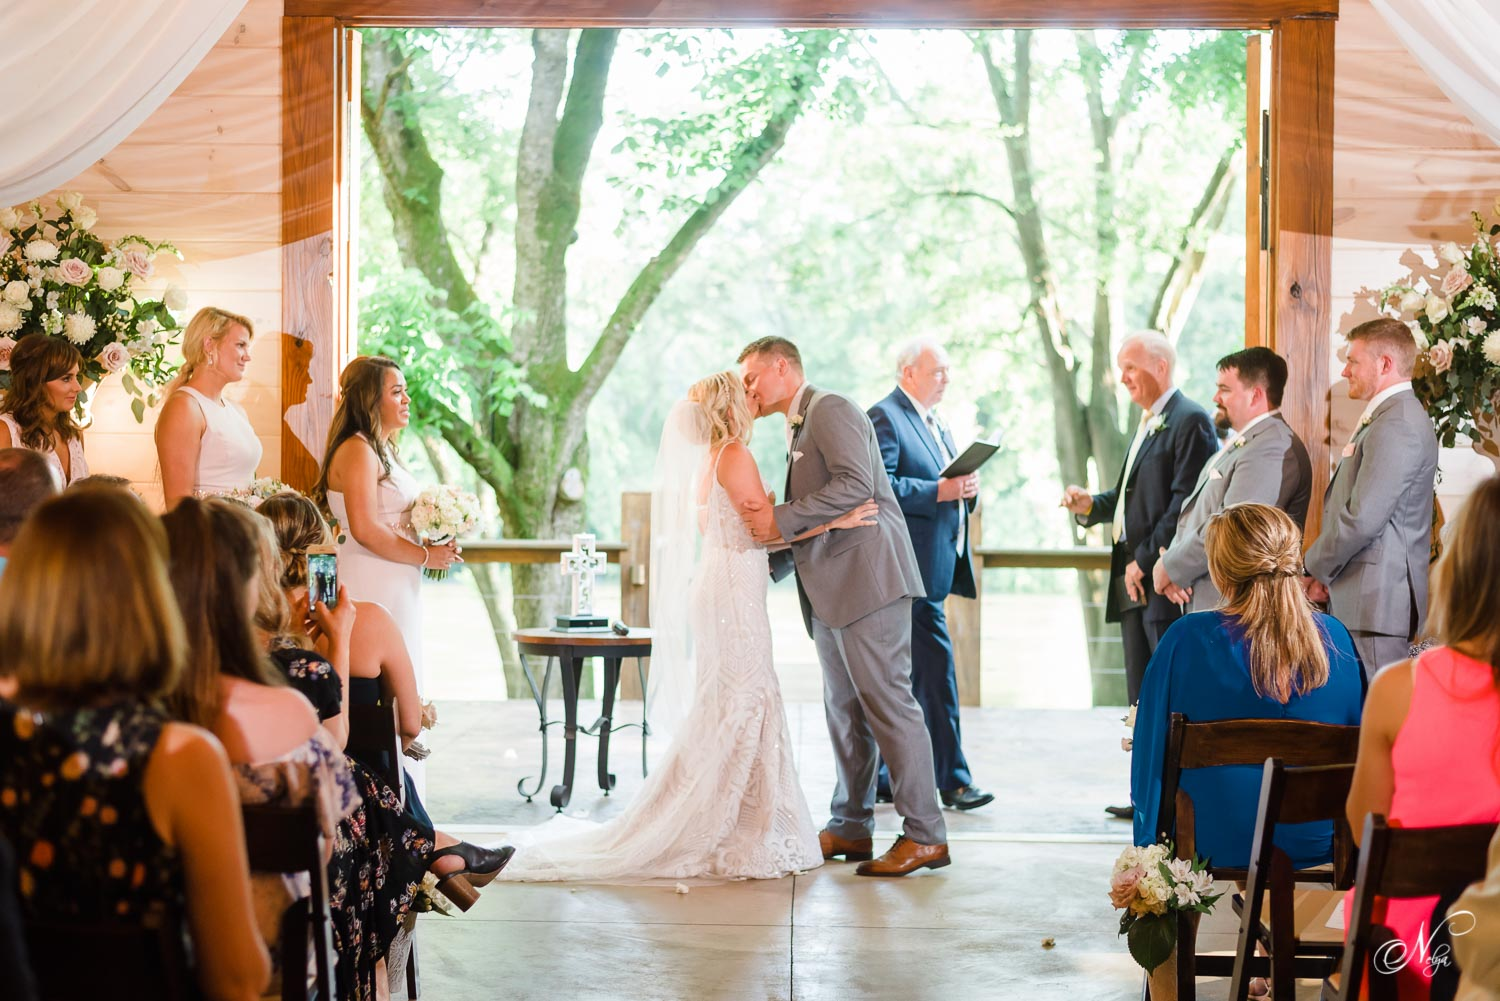 just married bride and groom kissing in the open doorway overlooking the river